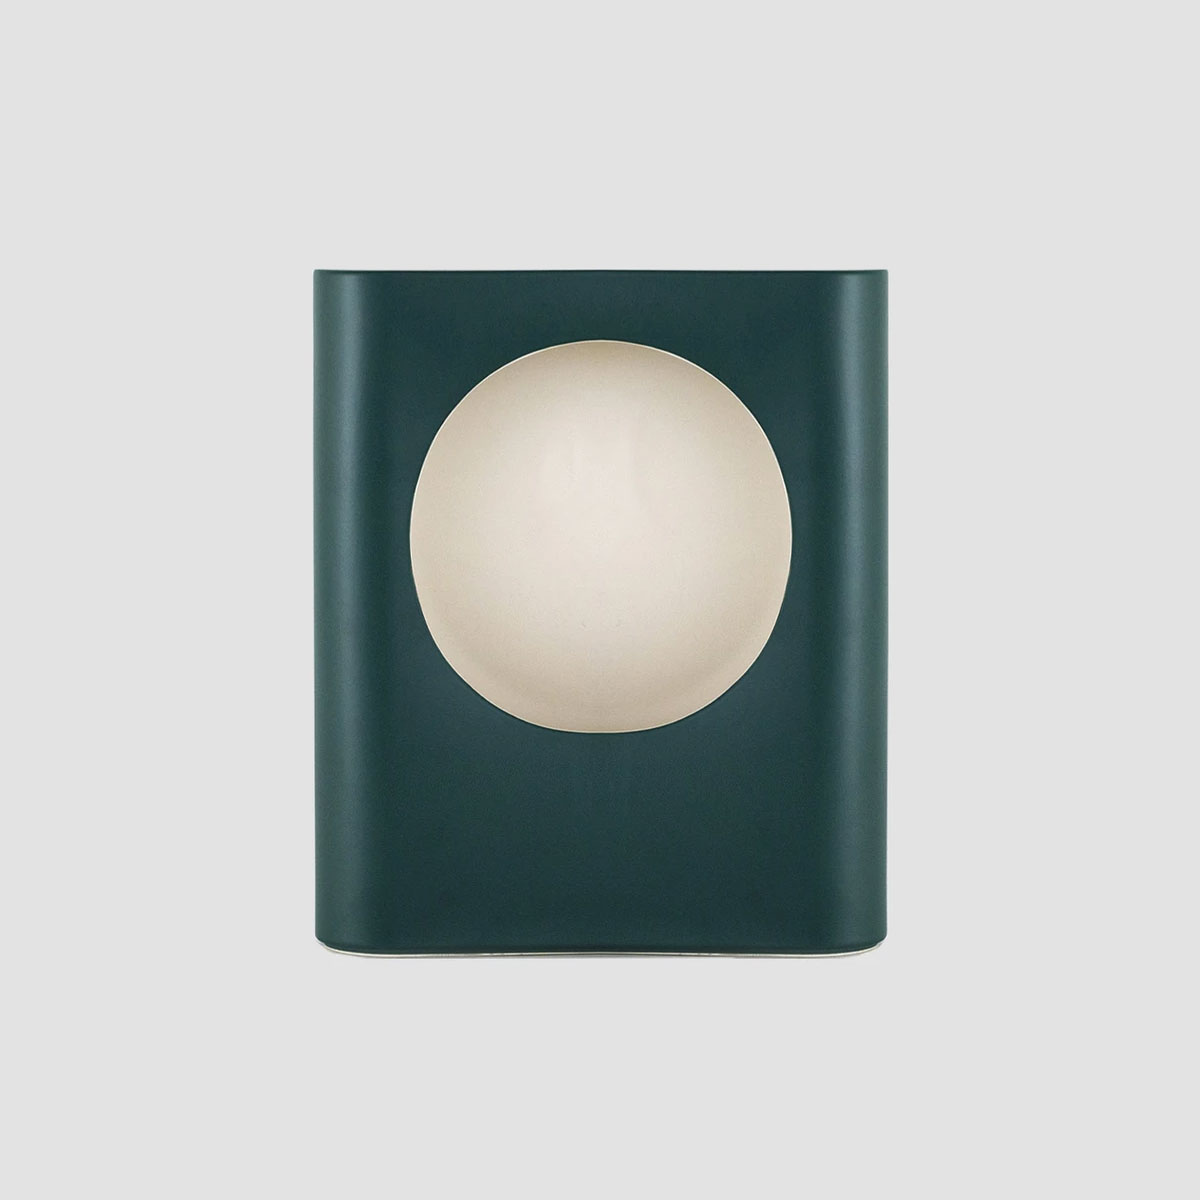 RAAWII Petite Lampe SIGNAL Green gables